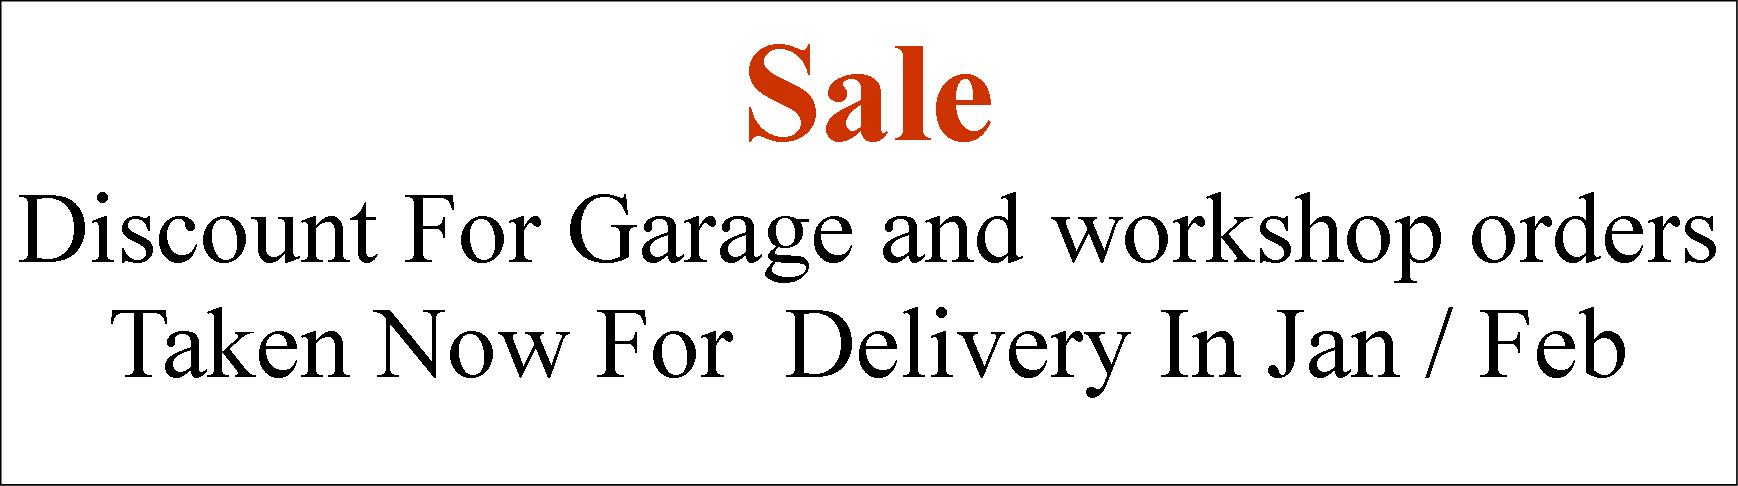 Garage and workshop sale